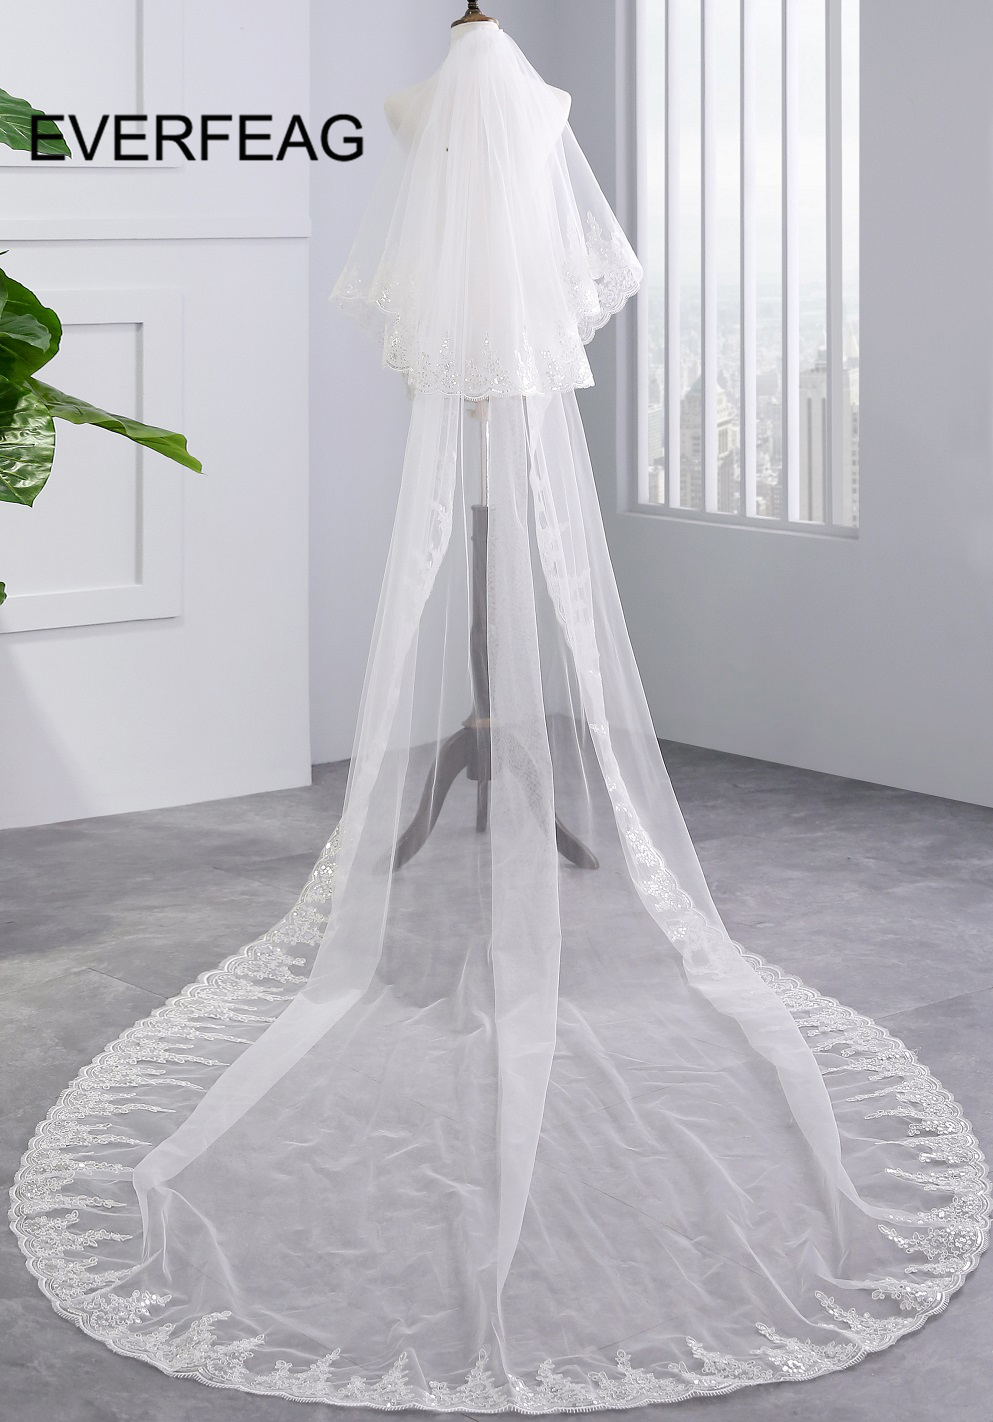 2019 Cheap 3 Meters Wedding Veils with Comb White Ivory Full Lace Edge Two Layers Long Bridal Veil velo de novia